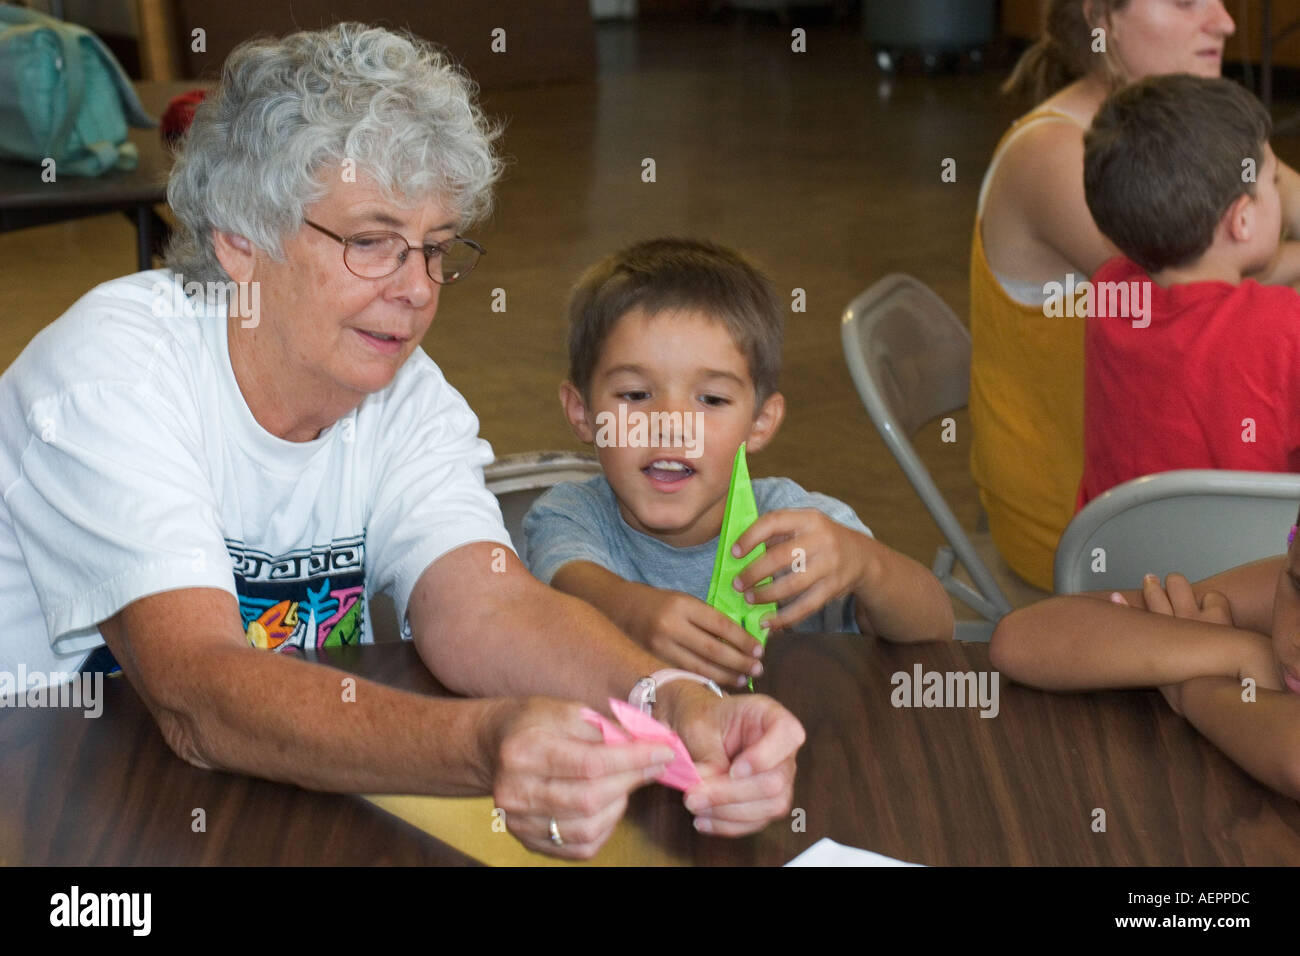 Child Learns to Fold Paper Cranes at Peace Camp - Stock Image